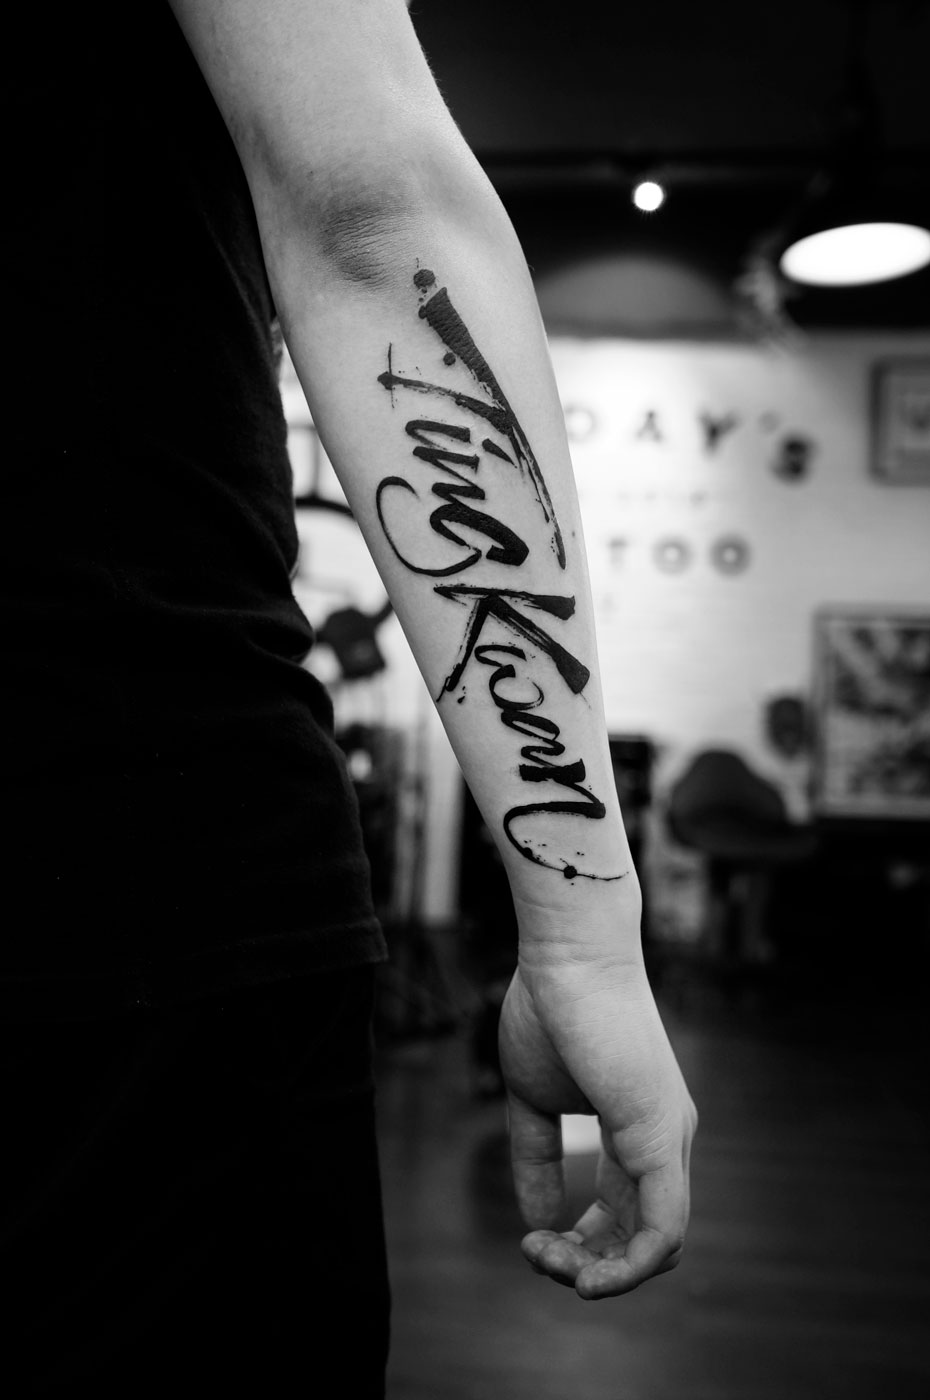 2018-fridays-tattoo-hong-kong-felix-brush-lettering-3.jpg